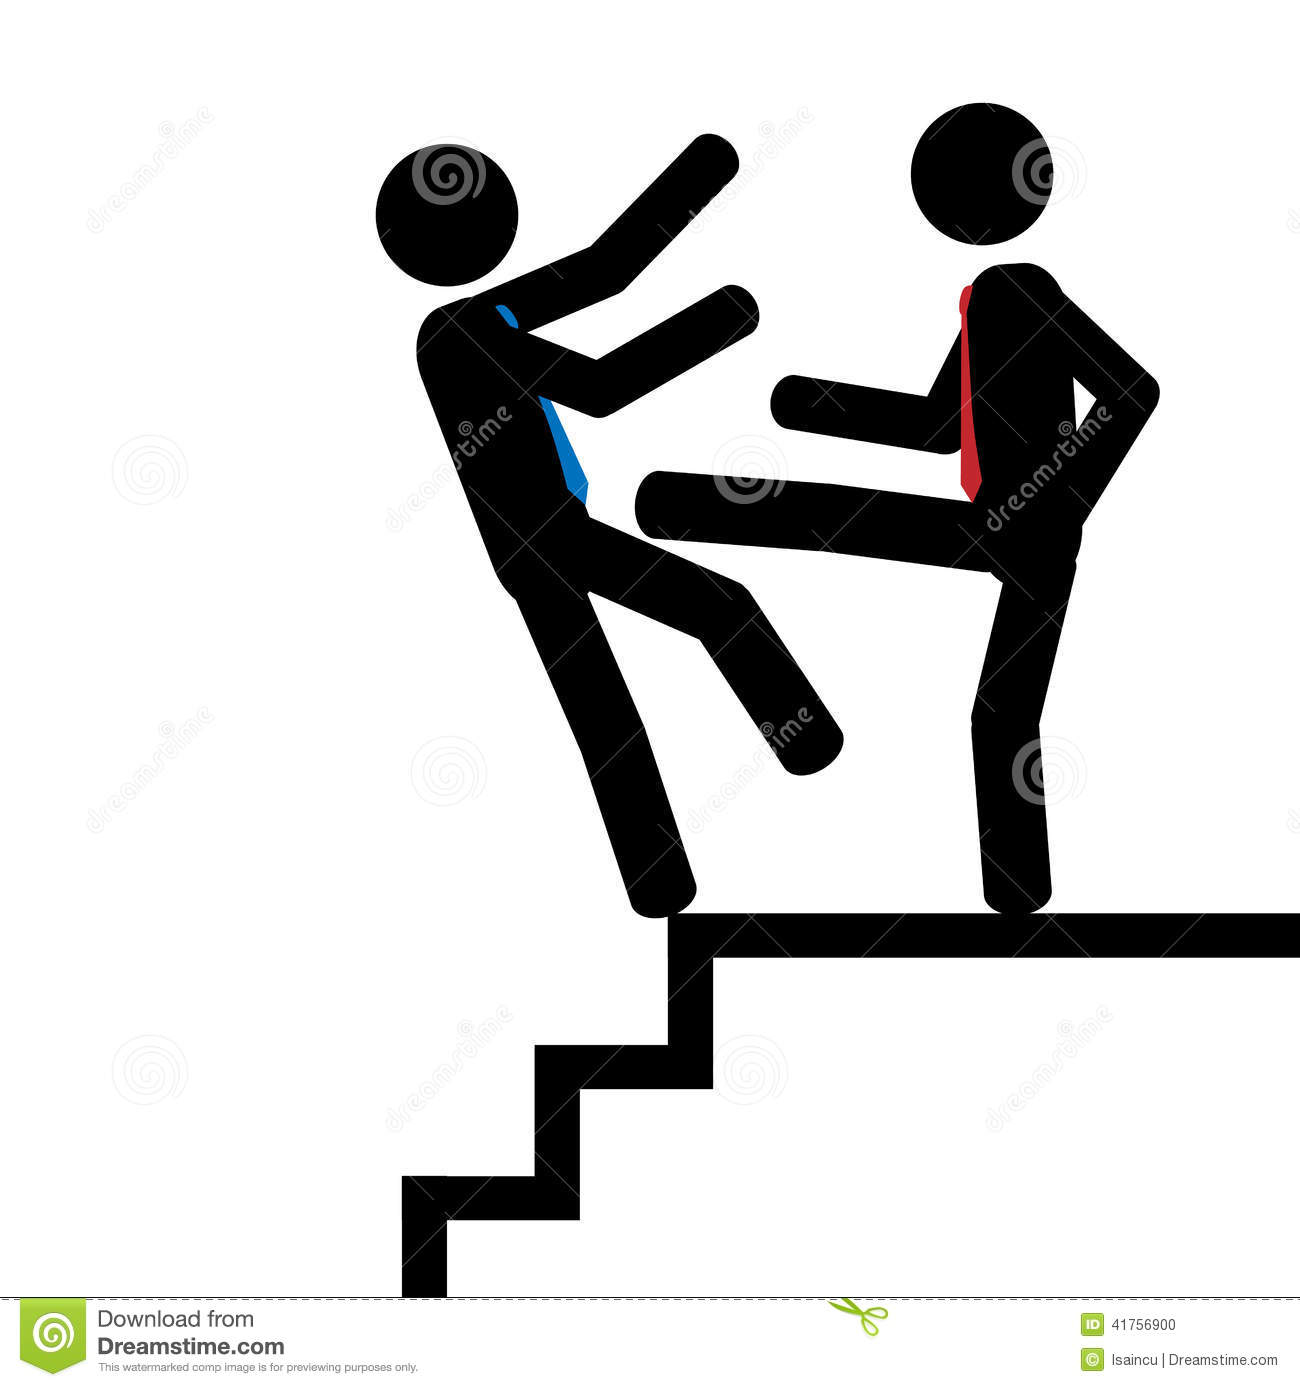 Vector/illustration. Man push another man down on the stairs.